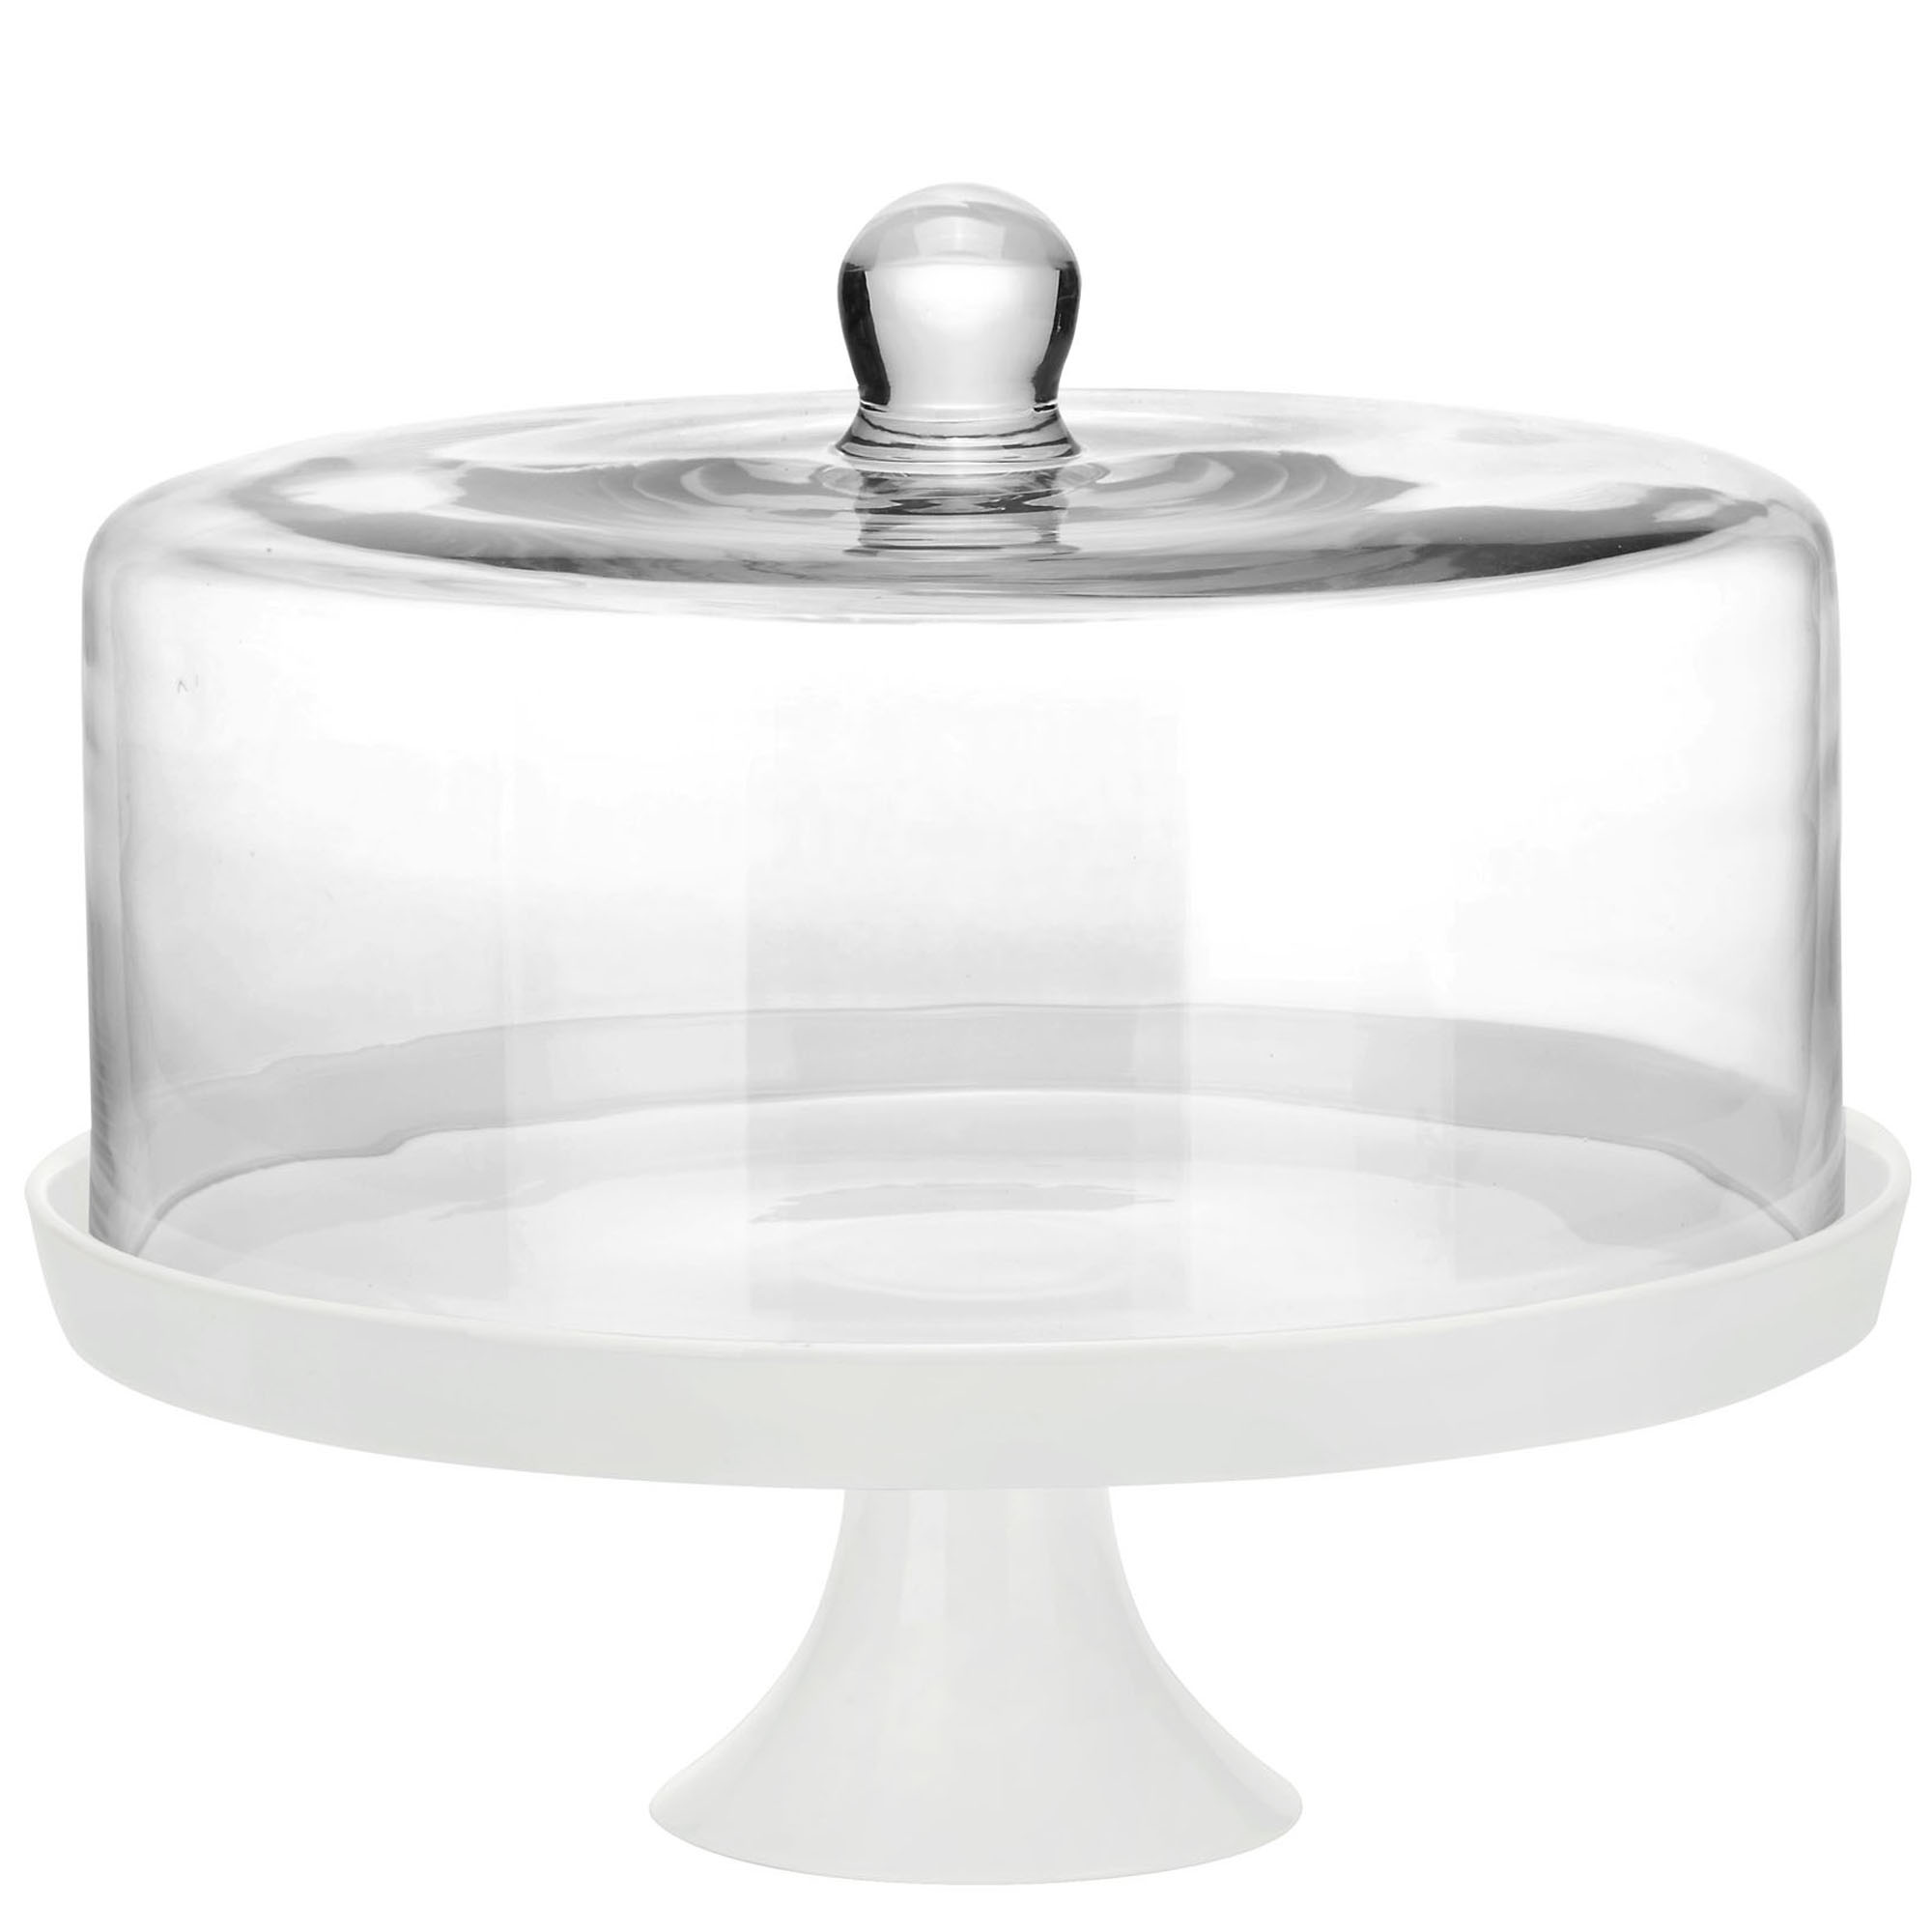 Large Cake Stand With Dome